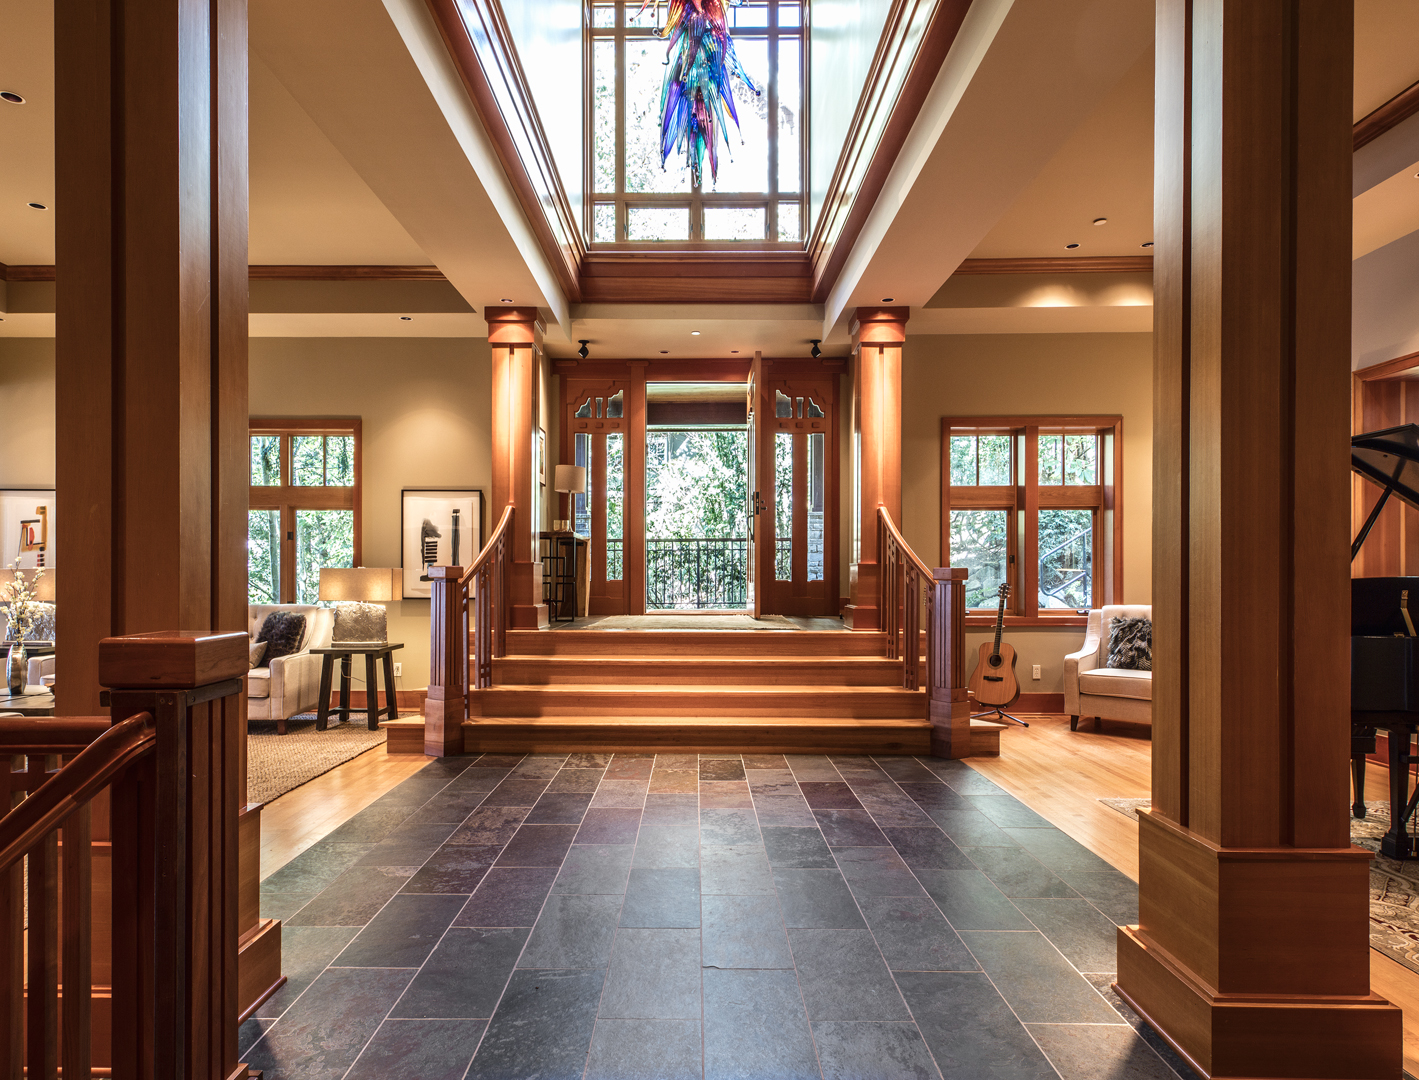 Photo of entryway to beautiful PNW home by Seattle Residential Architect